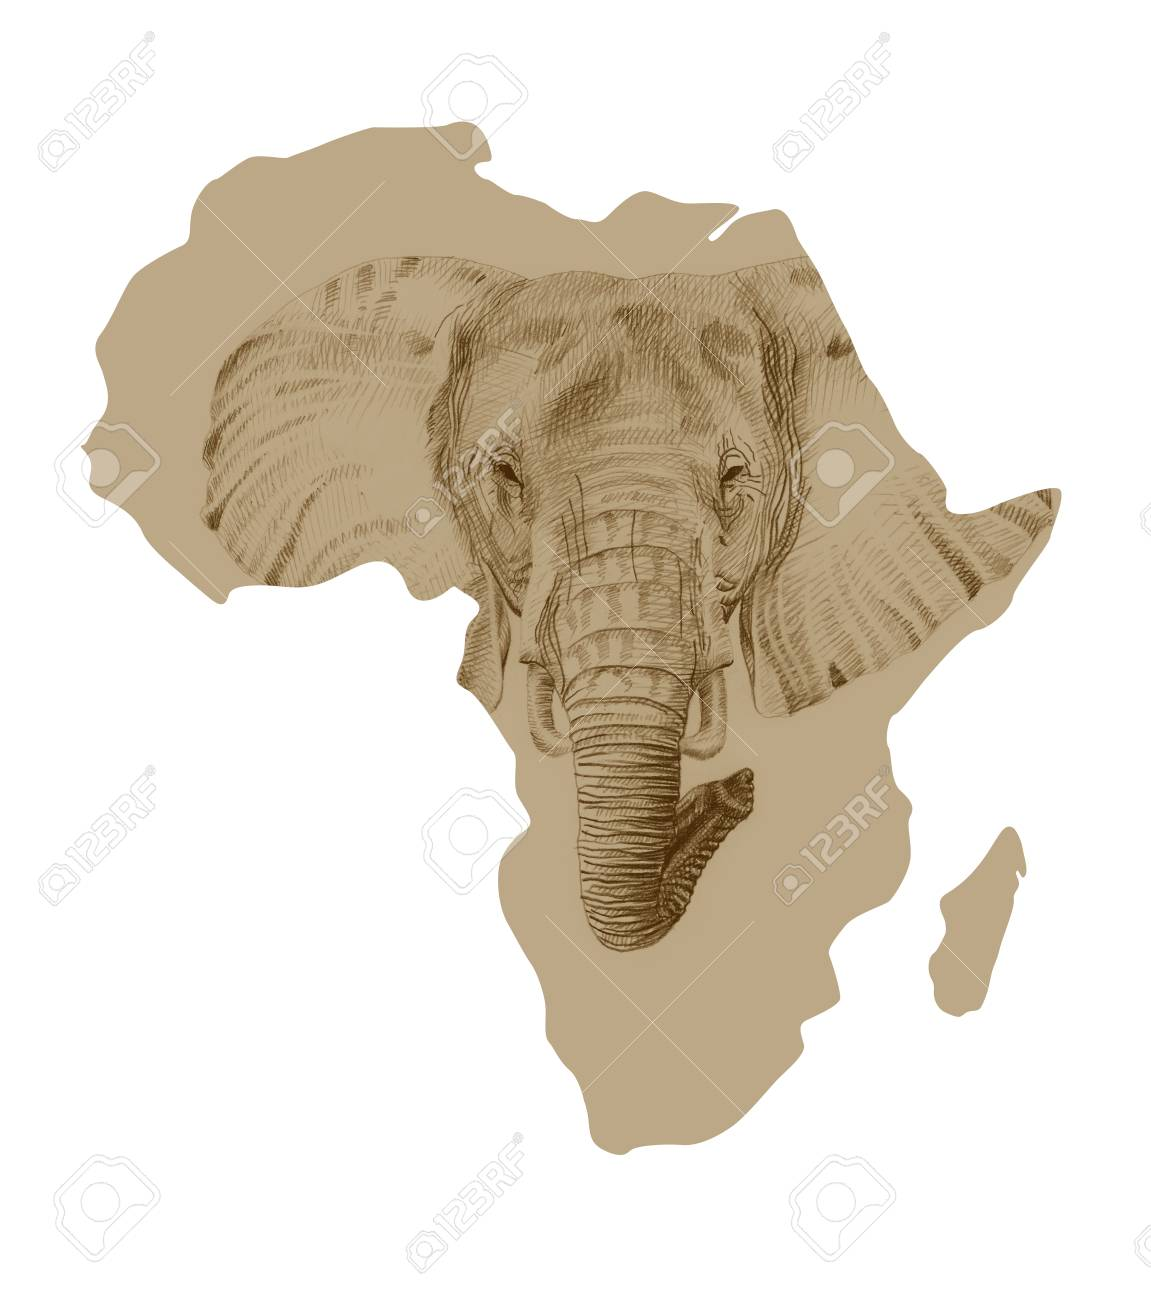 Map Of Africa With Pictures Of Drawn Elephant Stock Photo, Picture